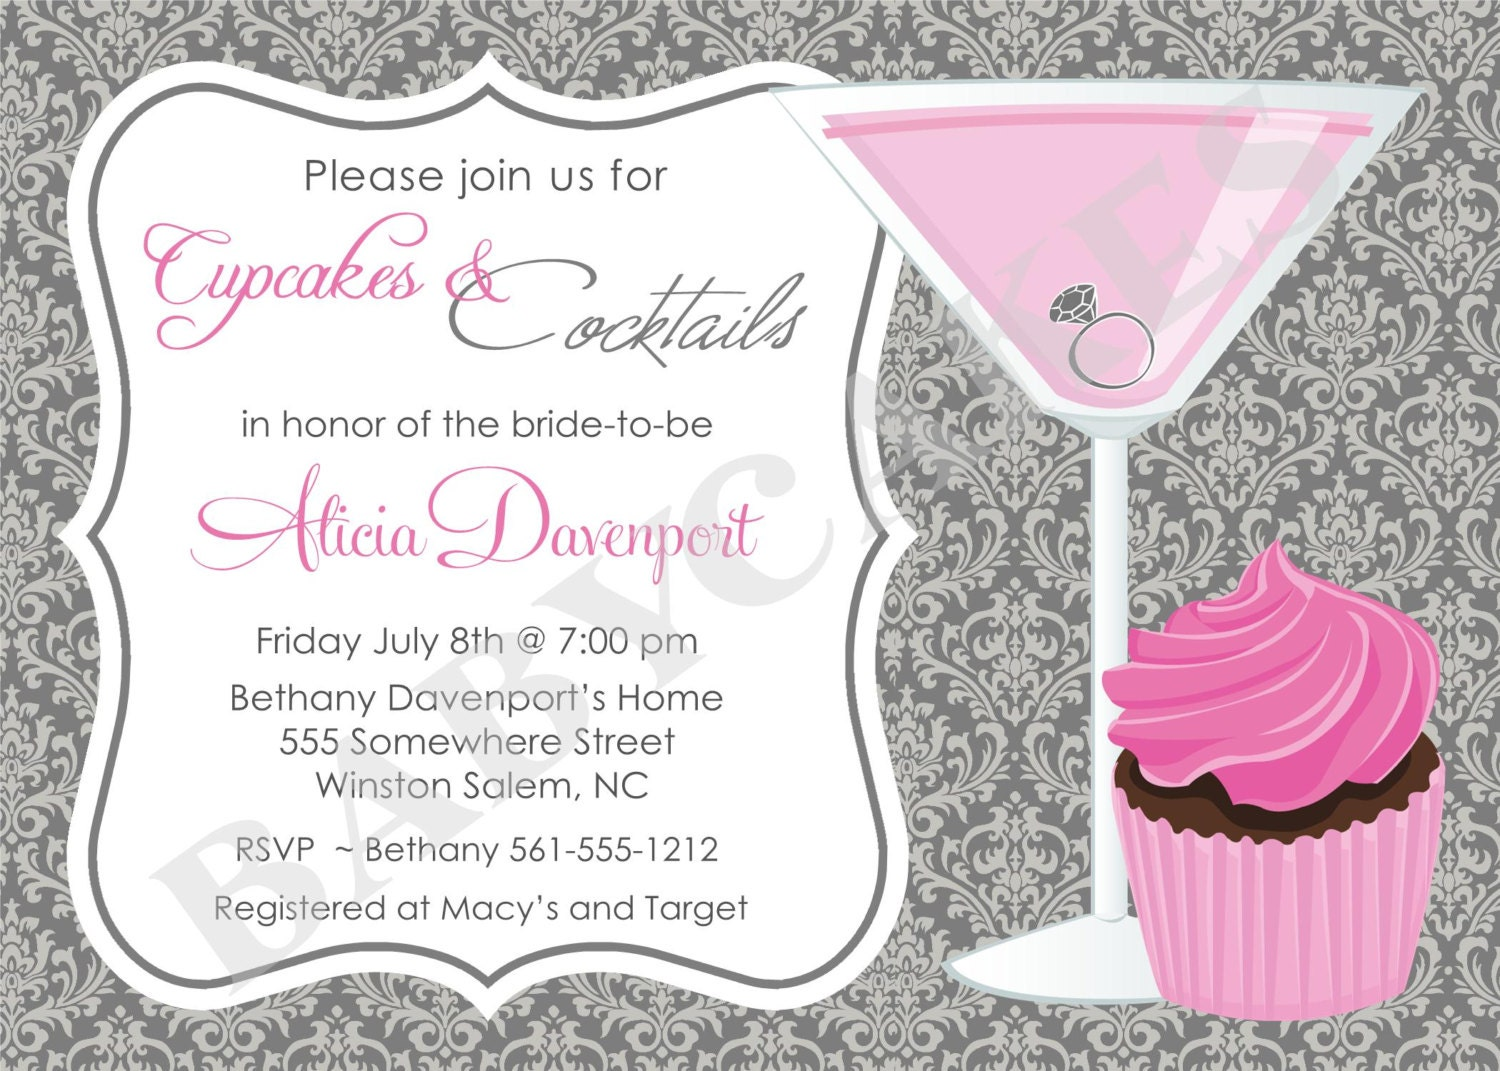 Wedding Shower Invitation: Cupcakes And Cocktails Bridal Shower Invitation By Jcbabycakes